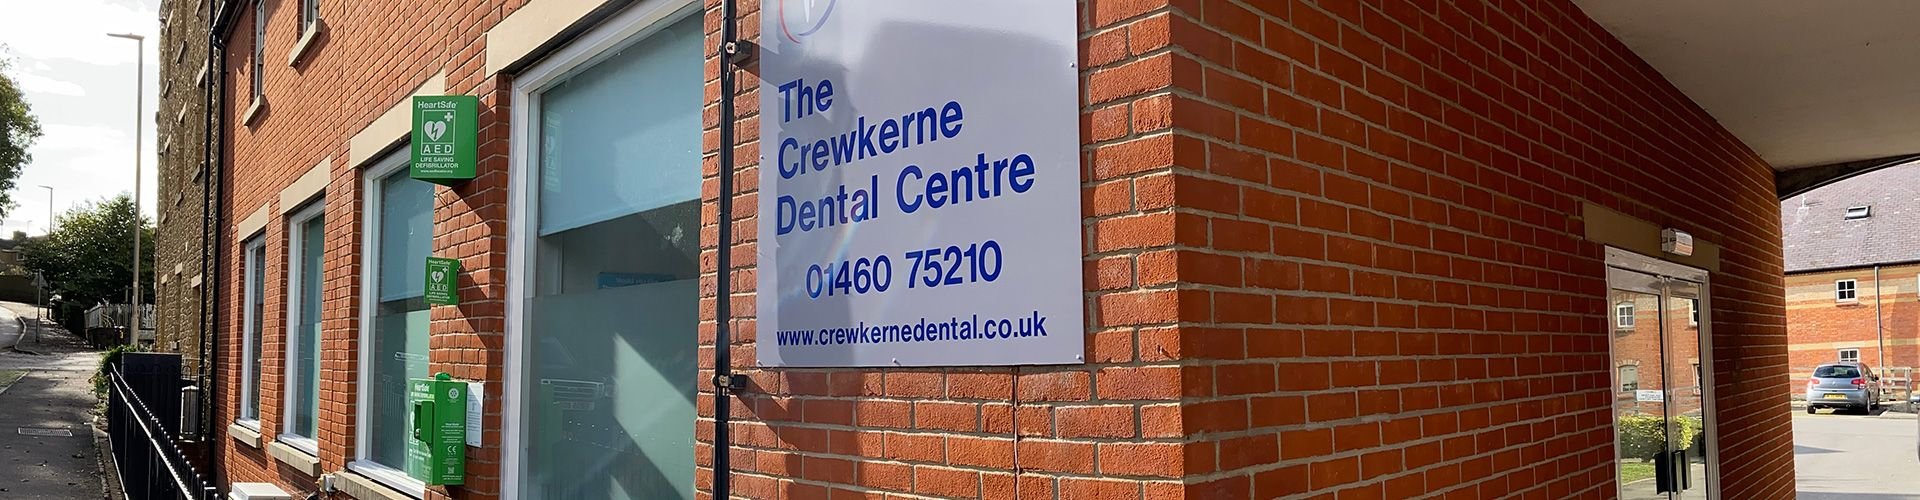 Crewkerne Dental Centre | The Smile Dental Group